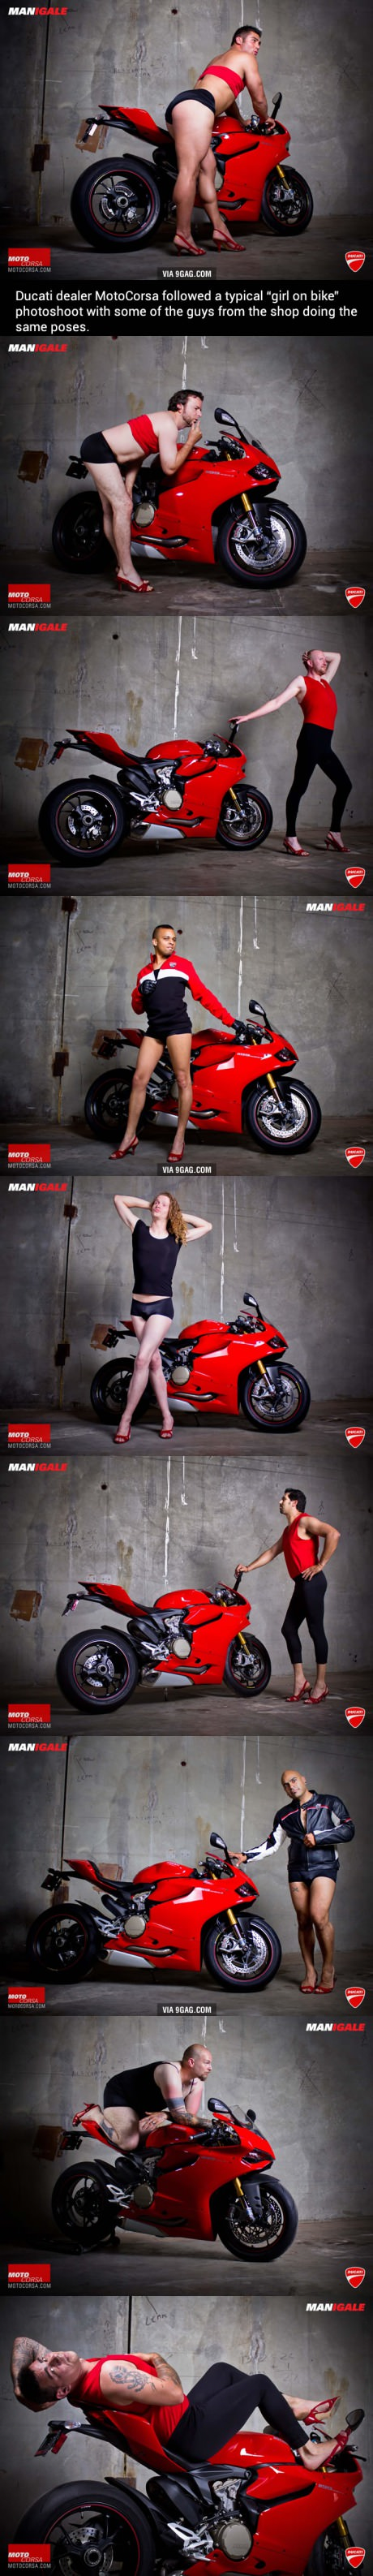 Men posing in the way women are posed in motorcycle ads.